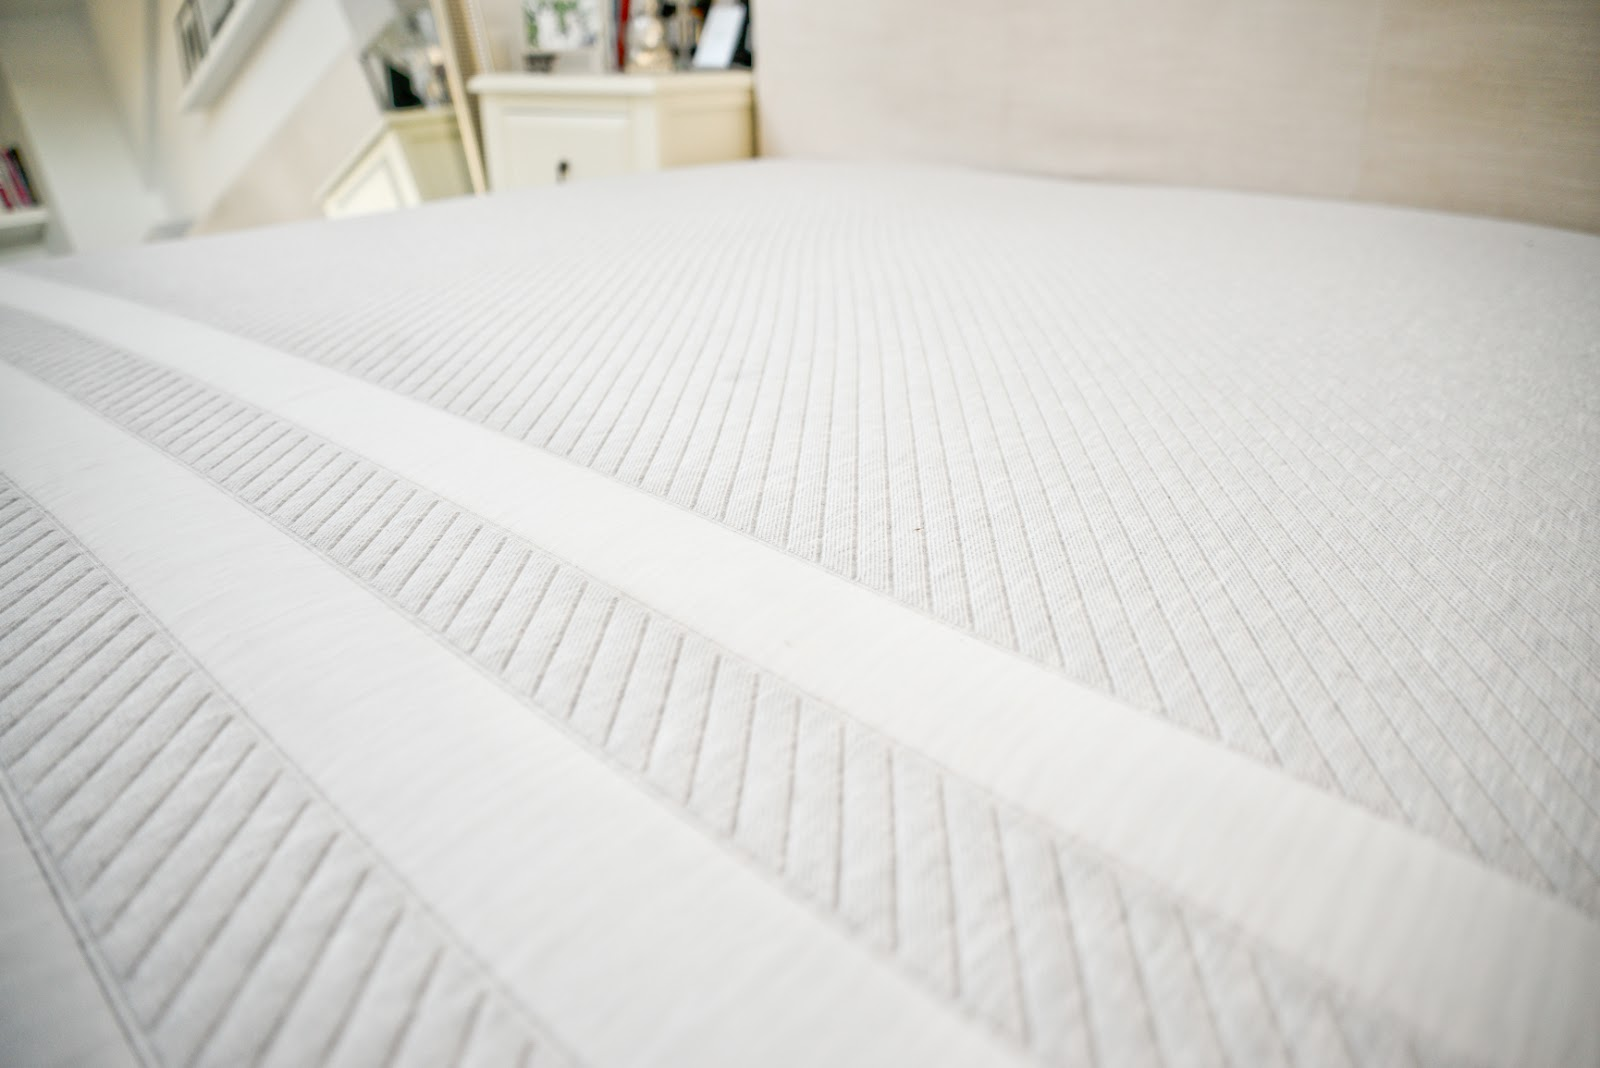 leesa mattress, leesa mattress review